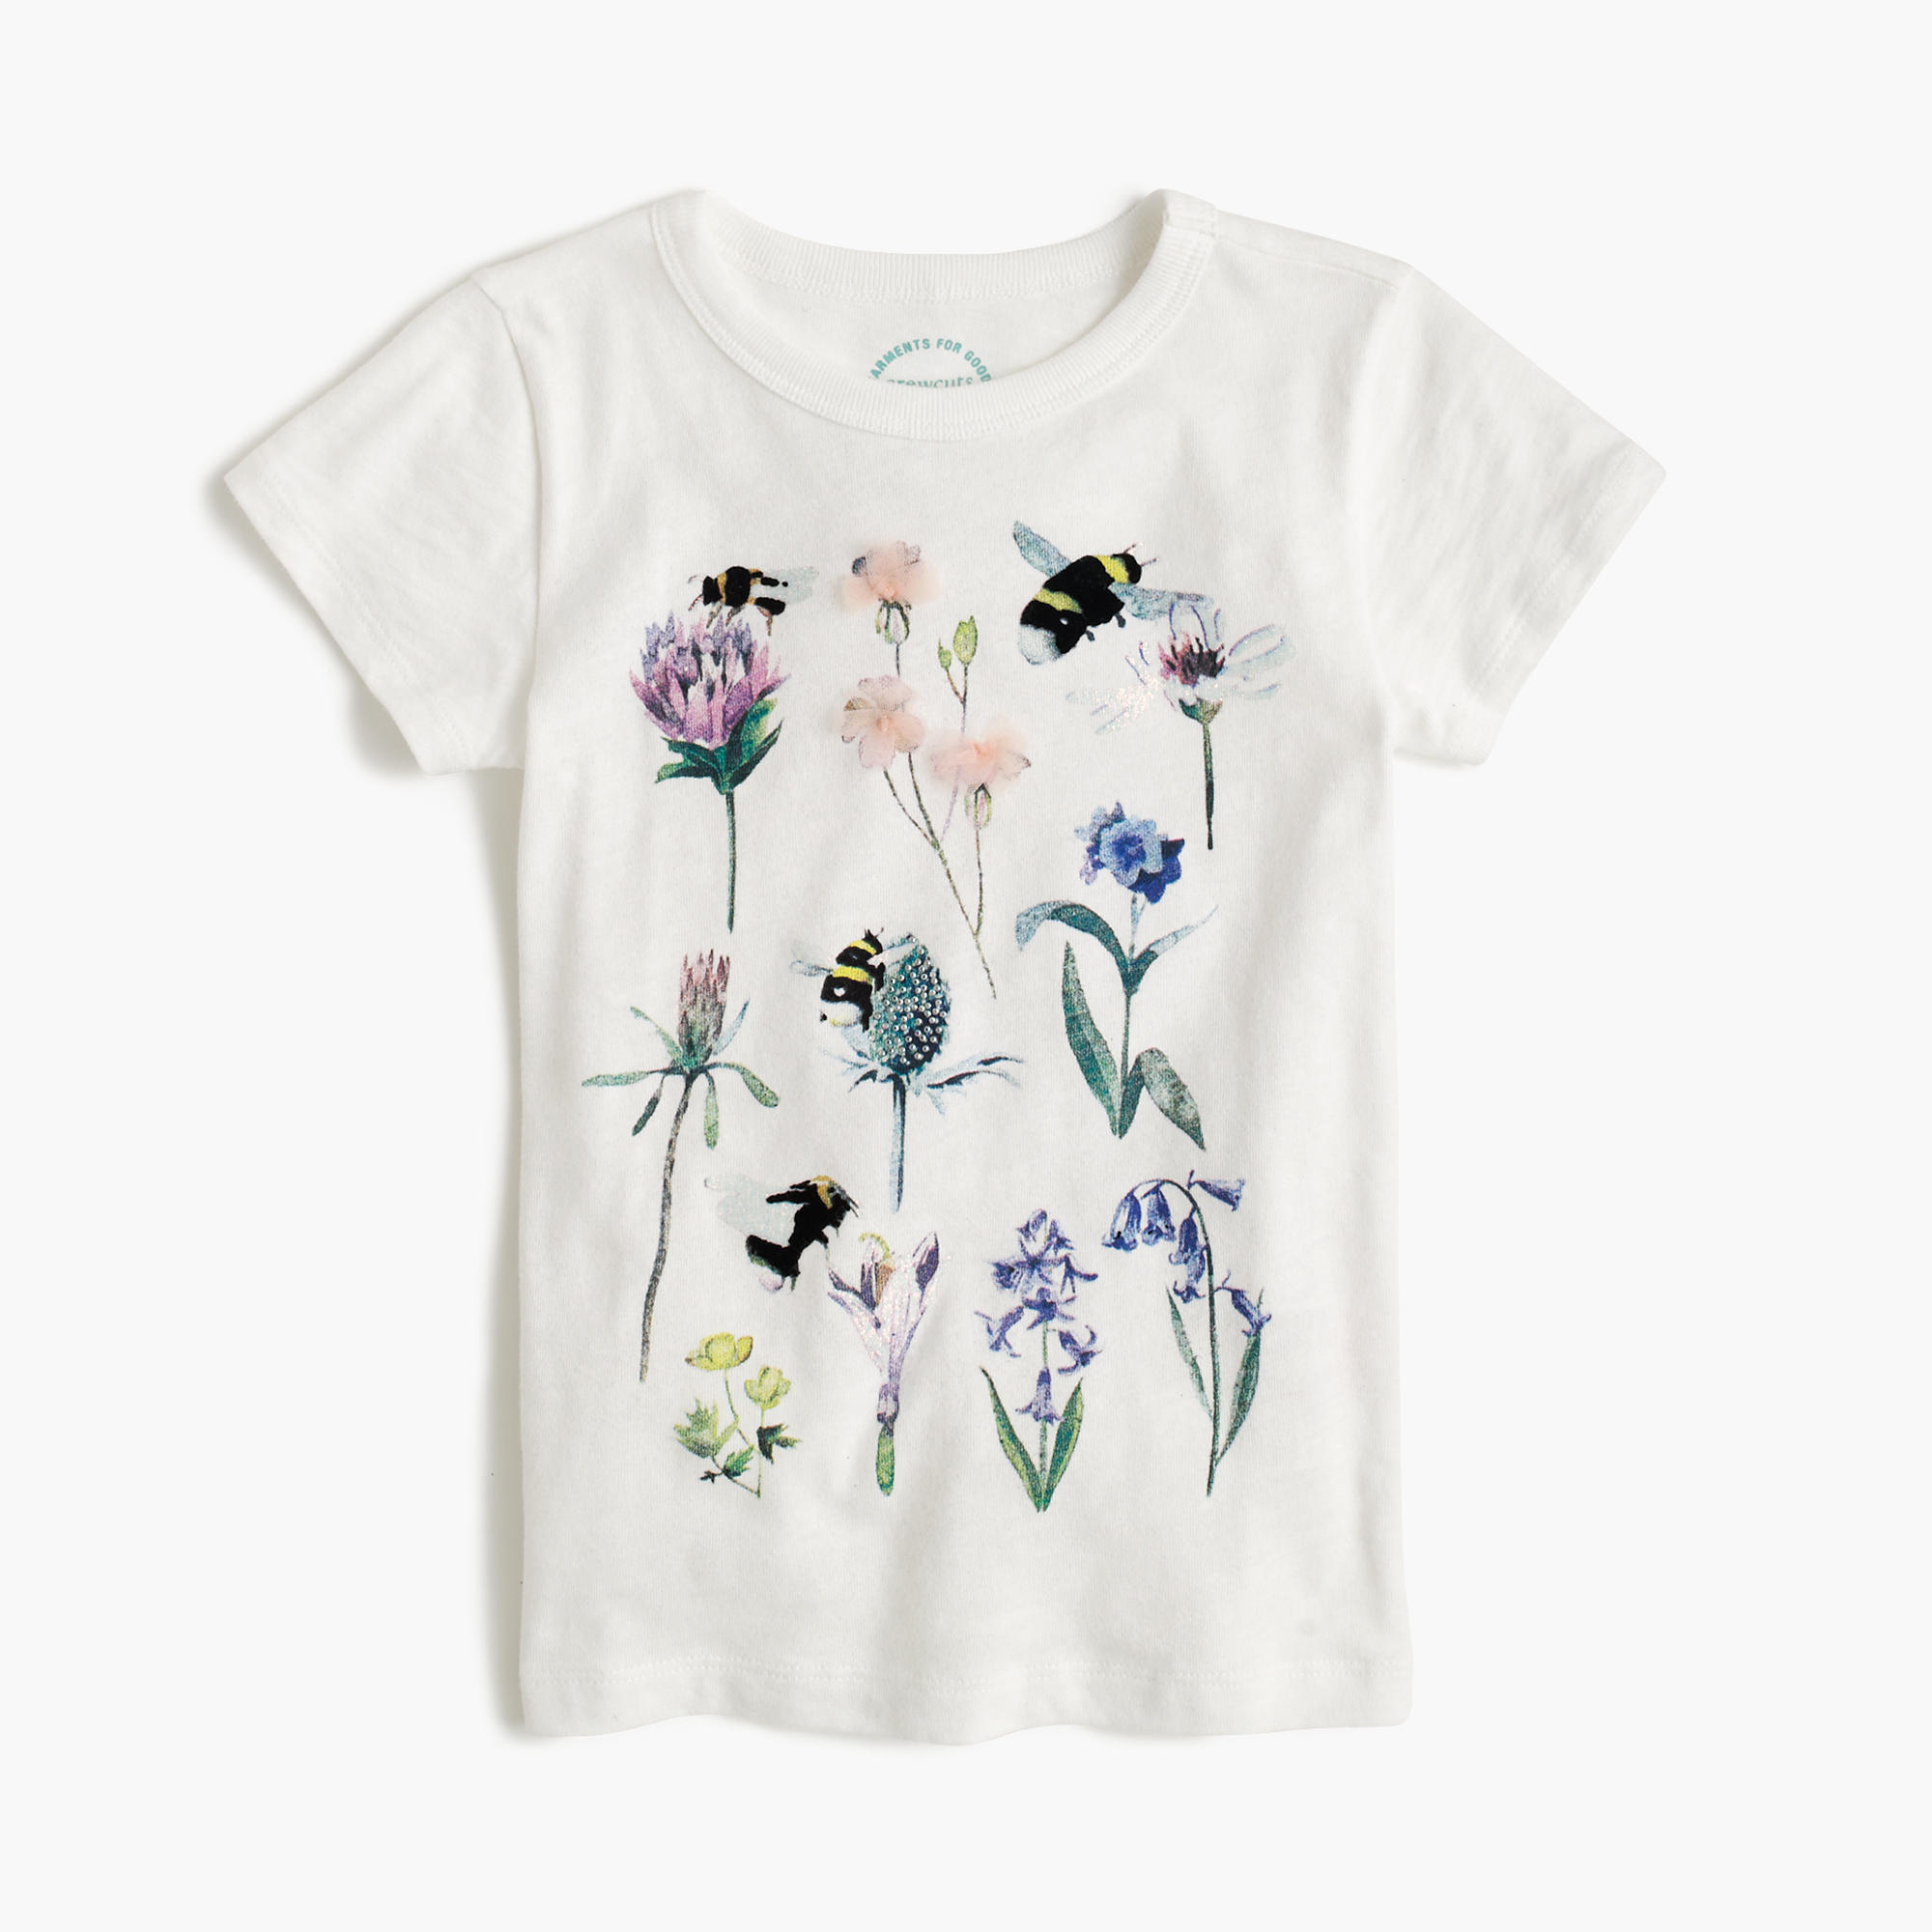 Girls 39 J Crew For The Xerces Society Save The Bees T Shirt